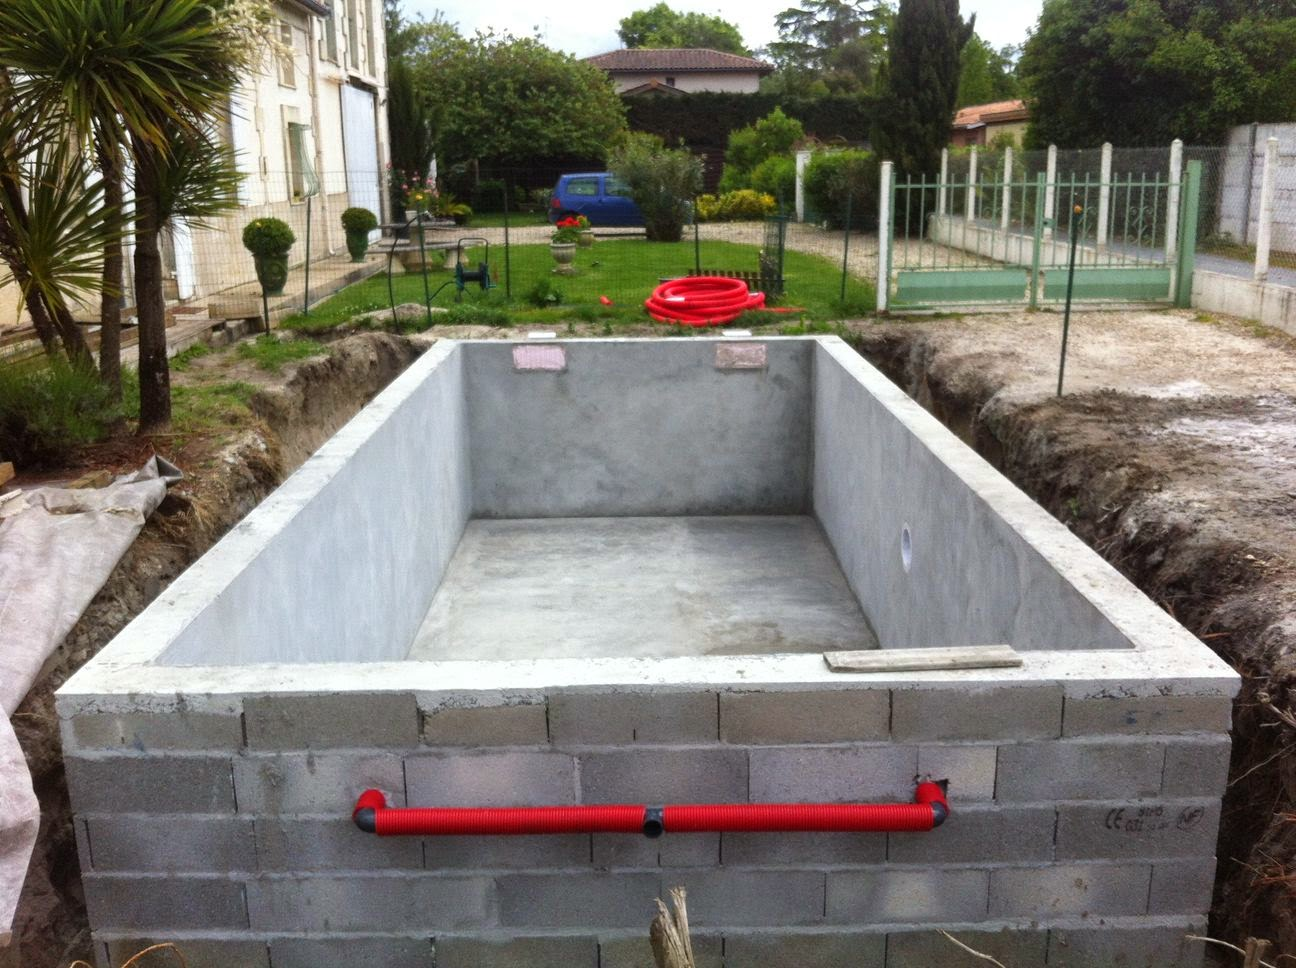 Projet tapes de construction d 39 une piscine en for Construction piscine